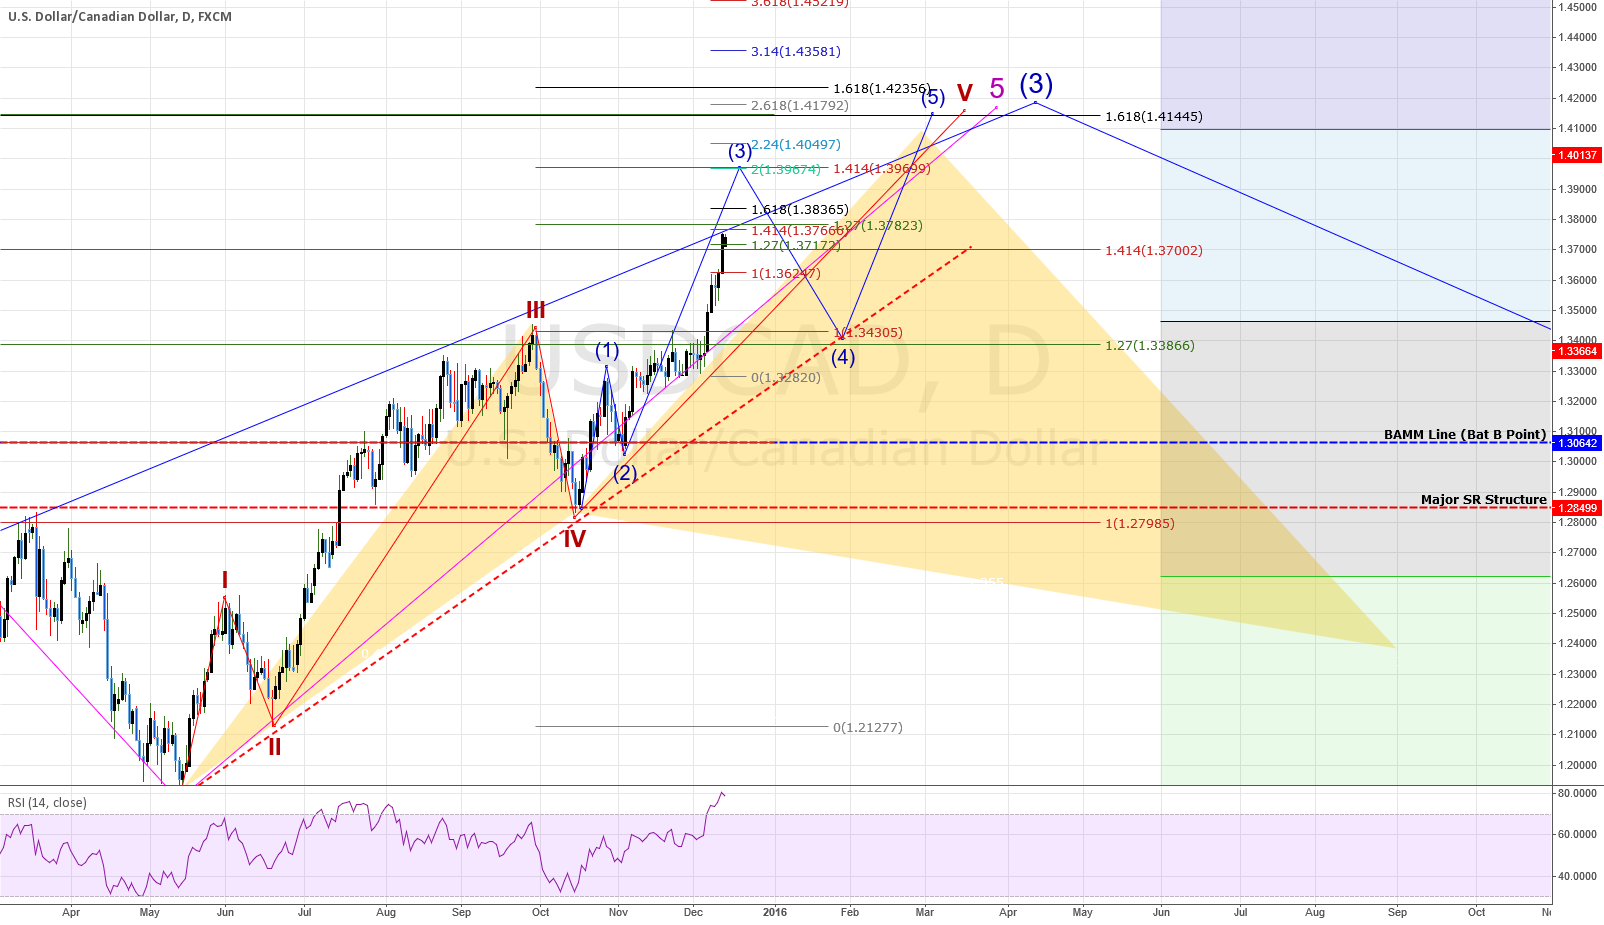 USDCAD: DAILY CHART